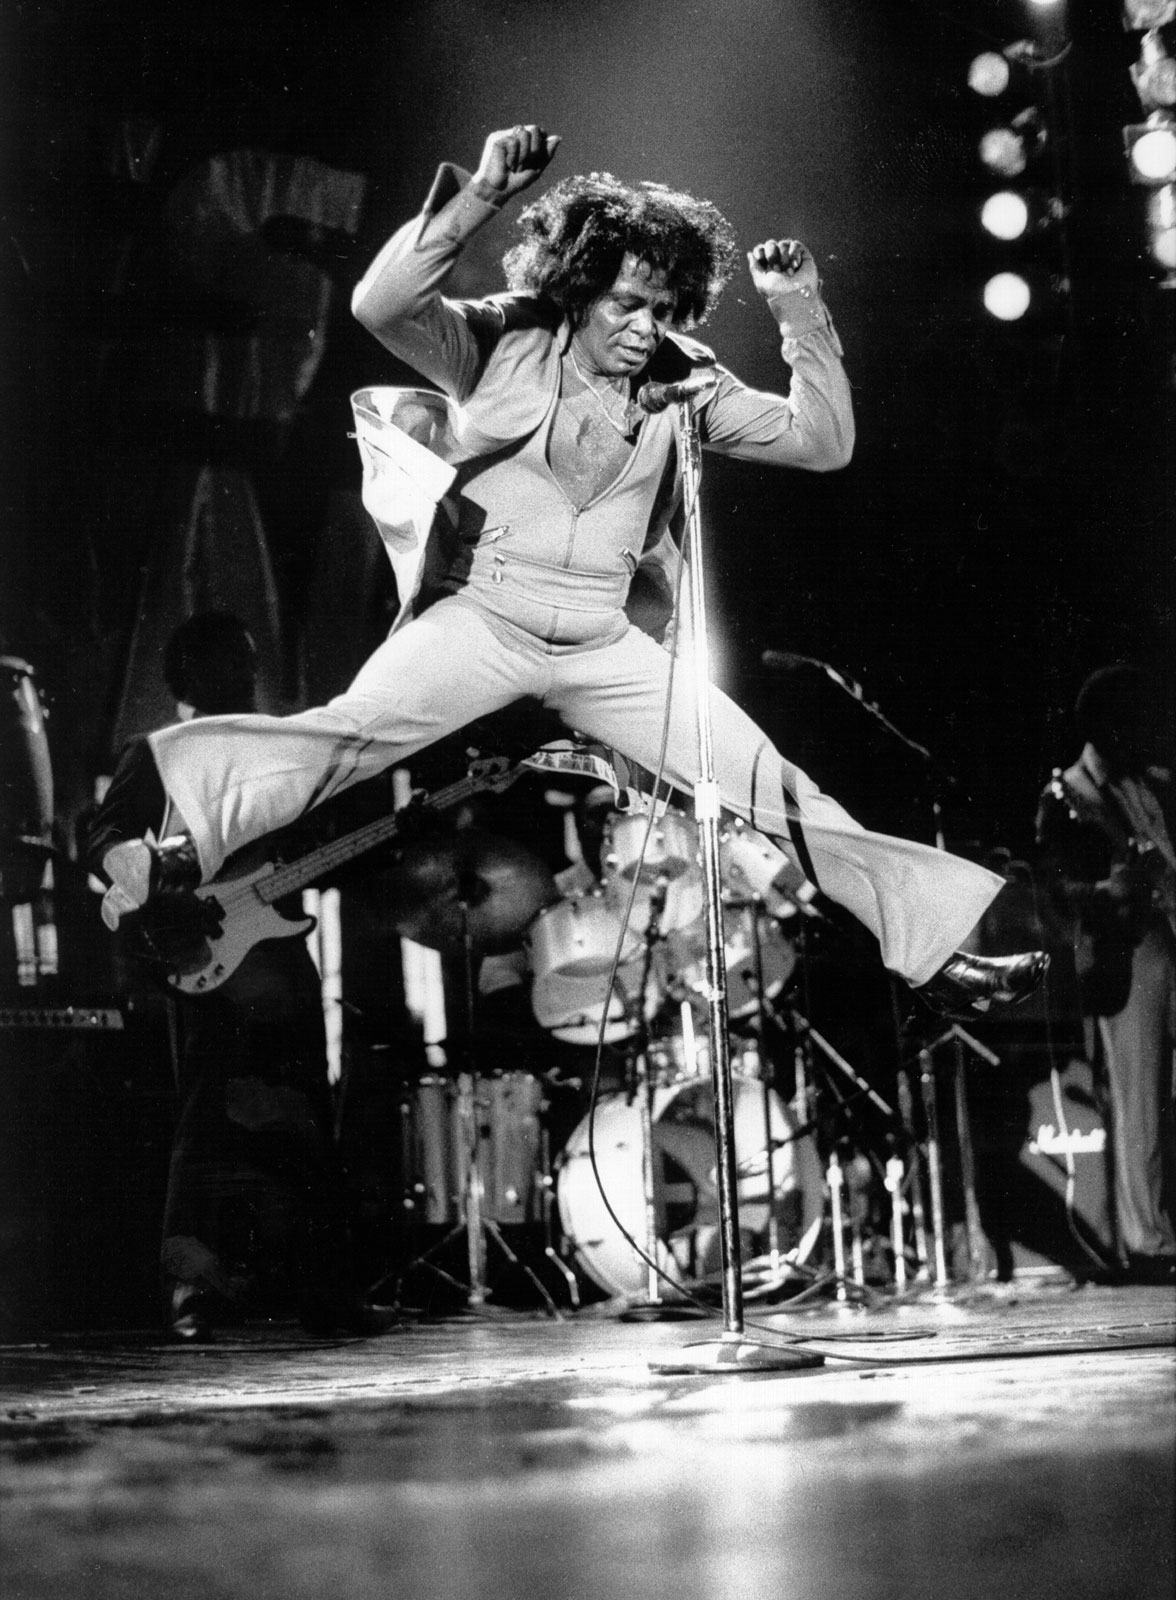 James Brown, the father of funk, leaps high in an onstage performance. Let his innovations inspire you to get out of your tarot funk and back into your groove.